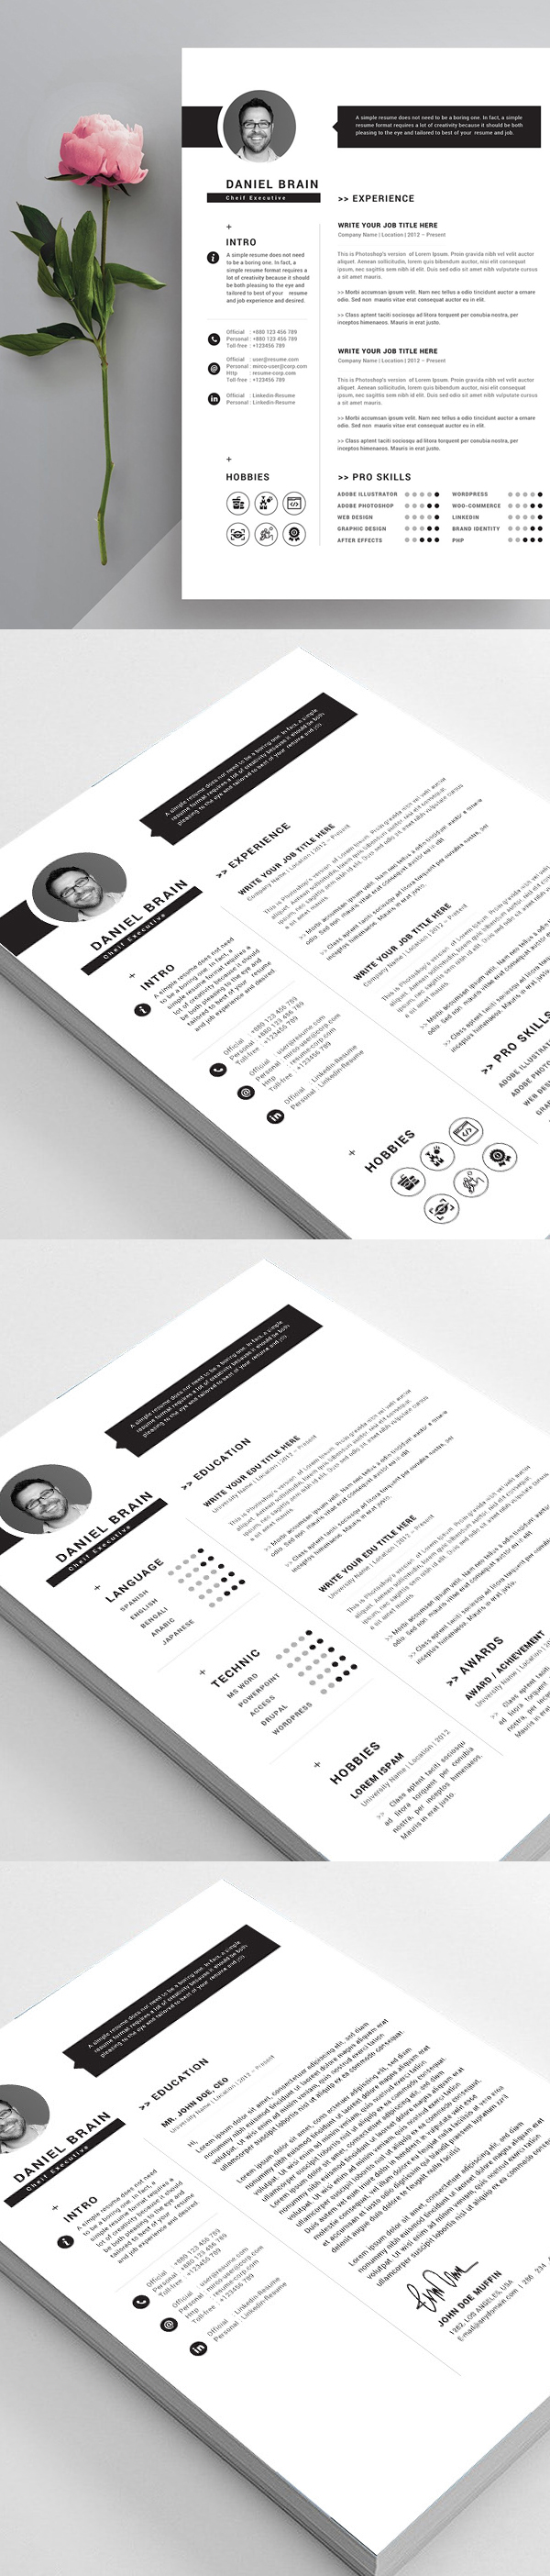 Free 2 Pages CV/Resume Template